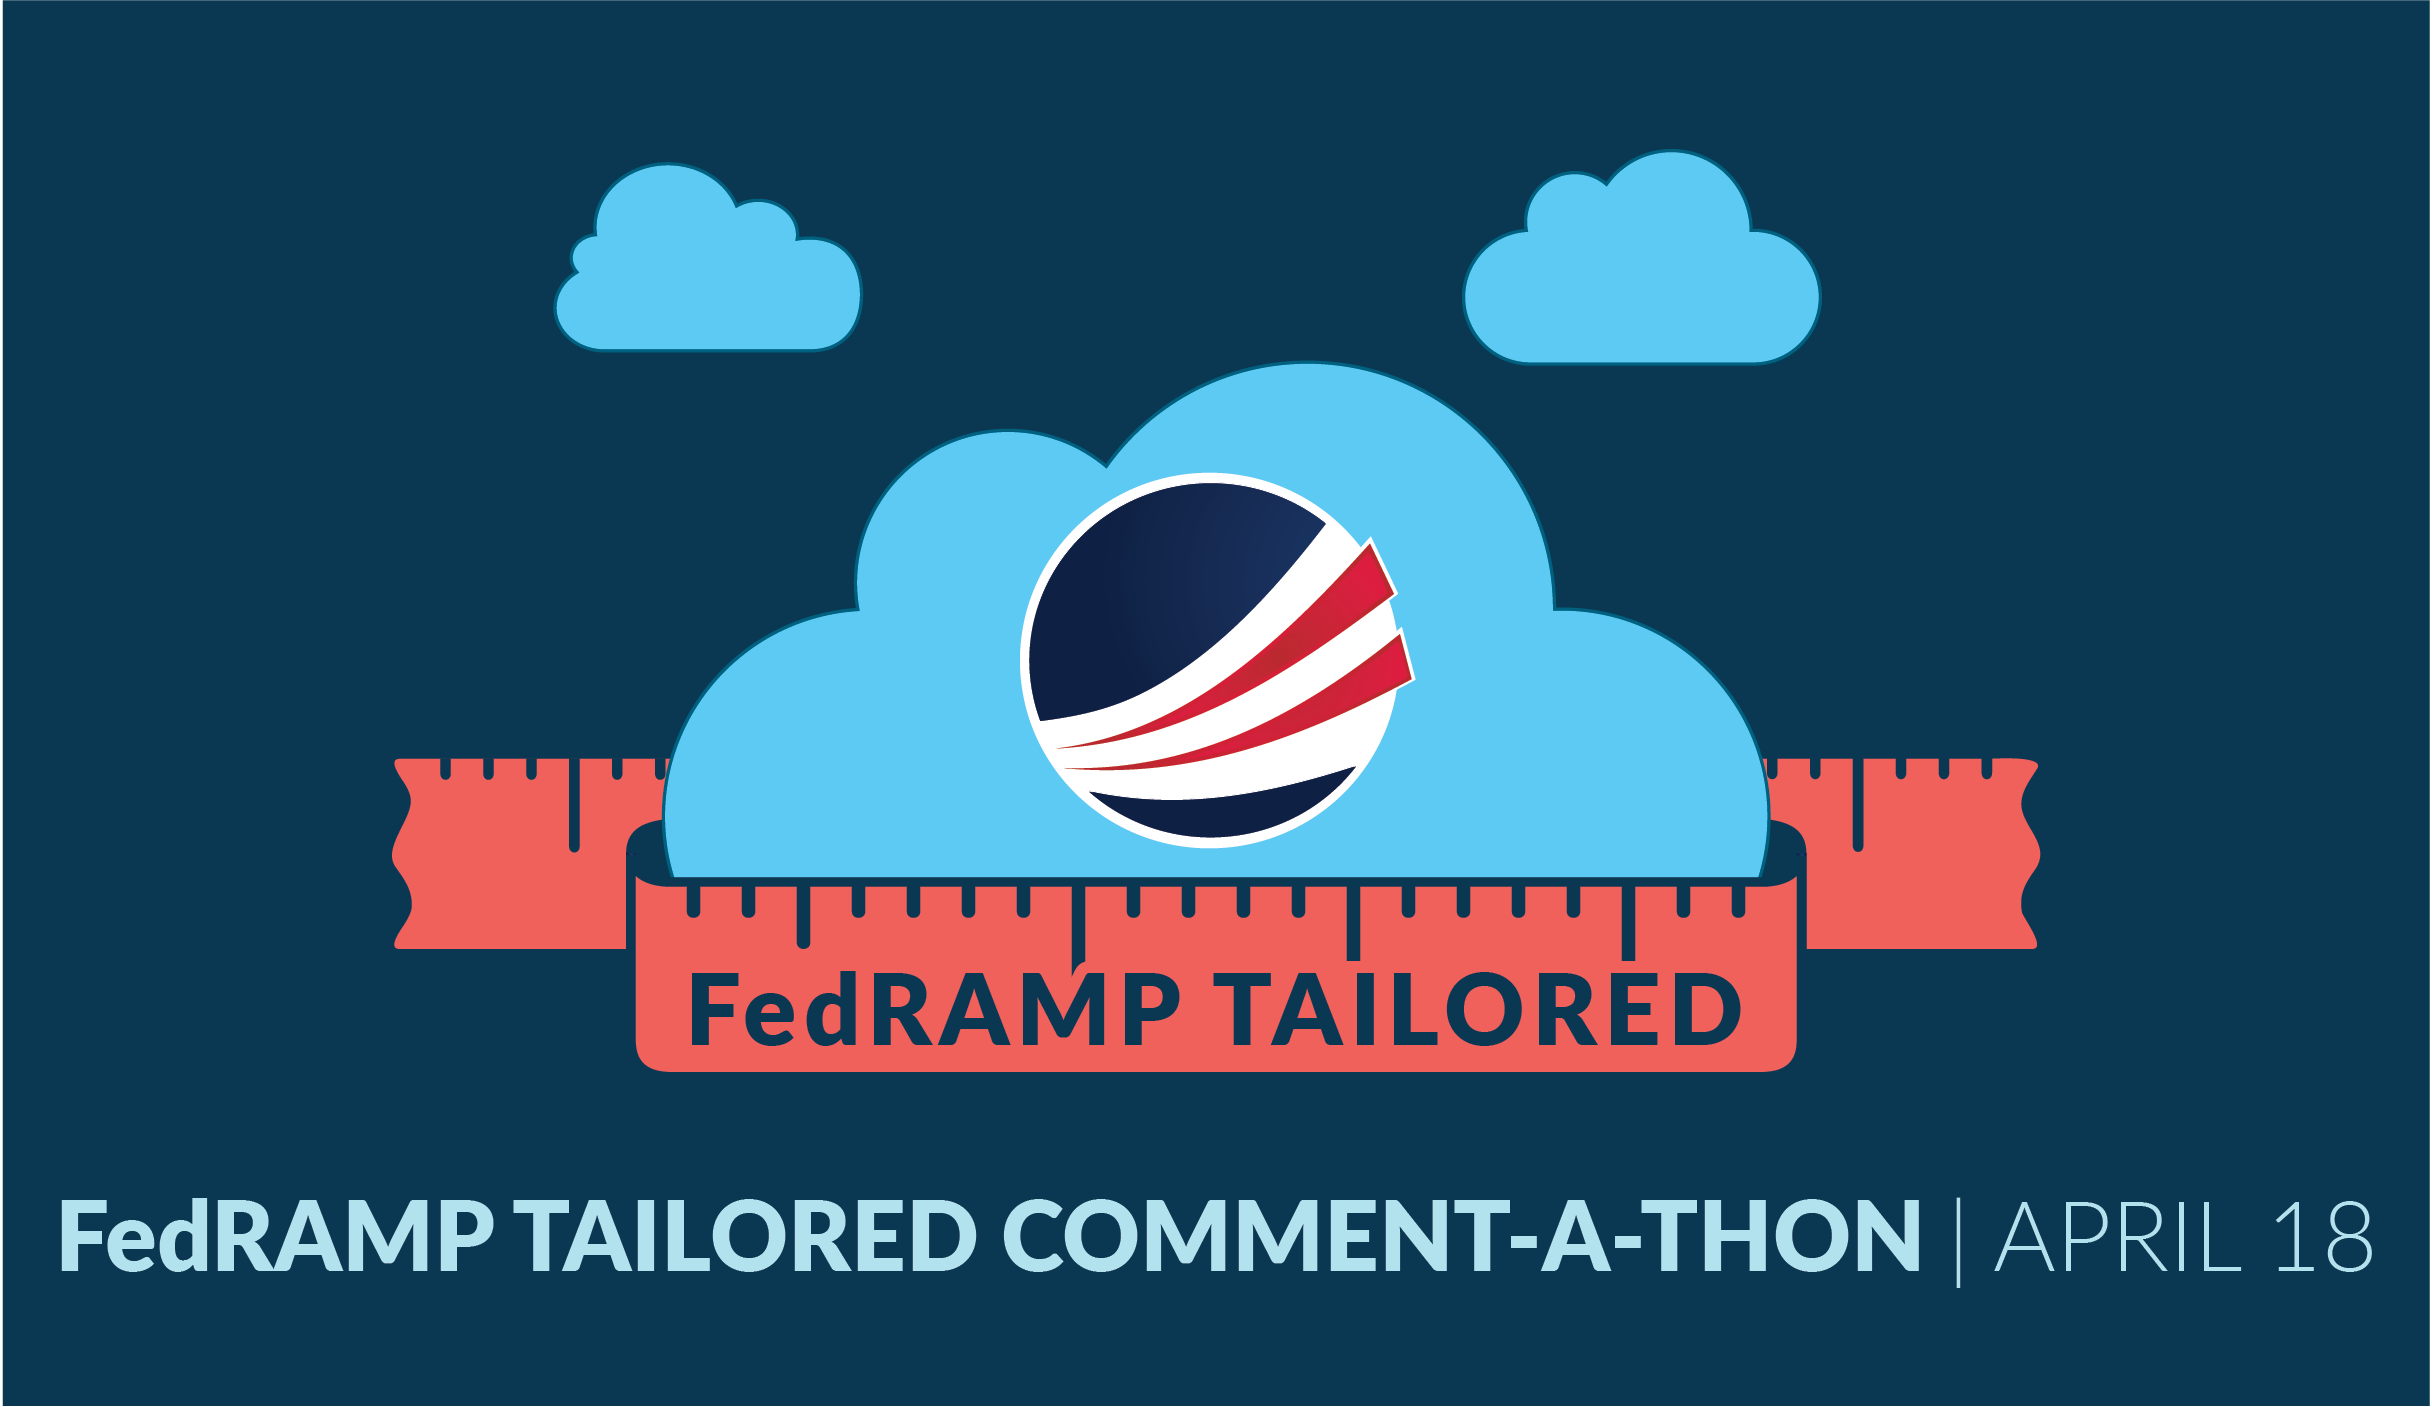 FedRAMP Tailored Comment-a-thon April 18!